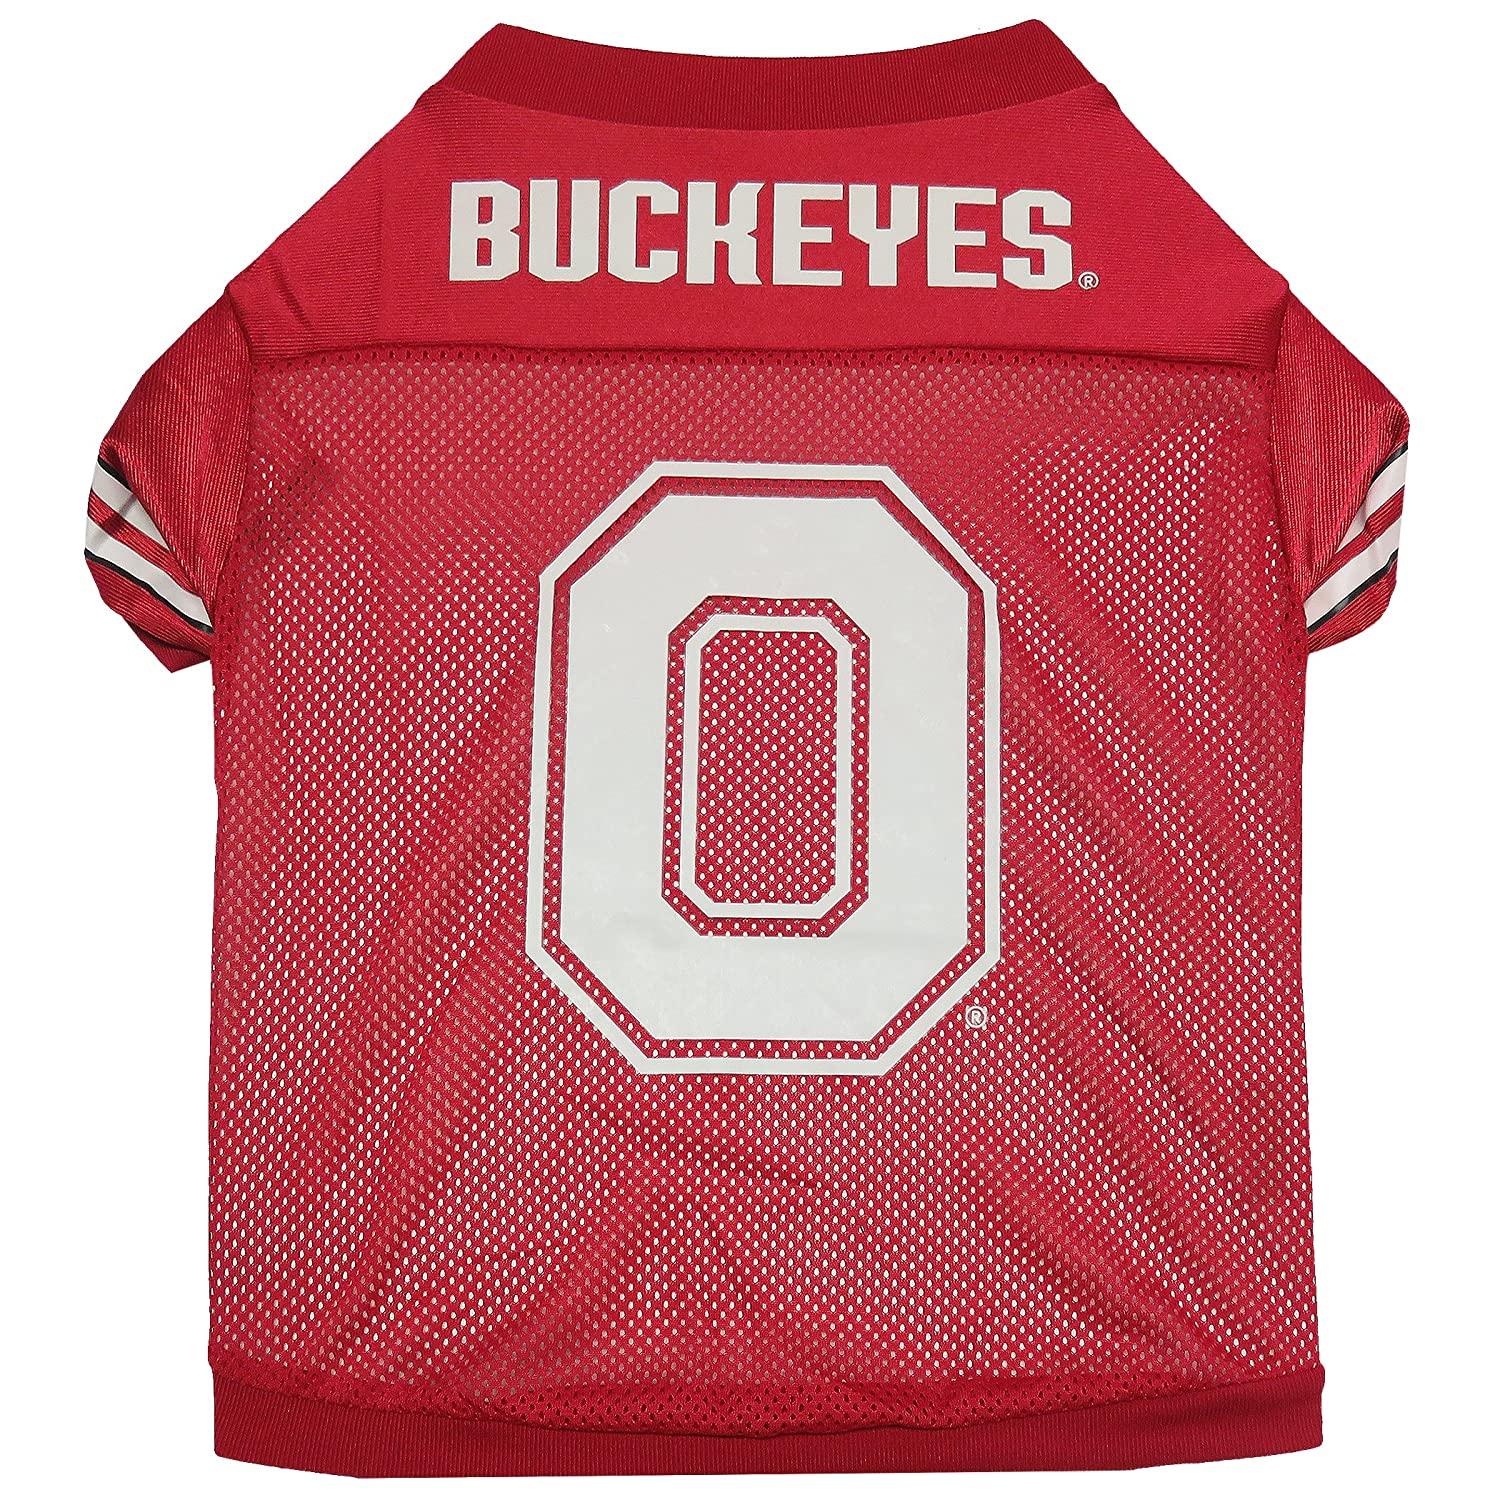 competitive price 73582 9a1a8 hot sale 2017 Football Jersey - Ohio State University ...